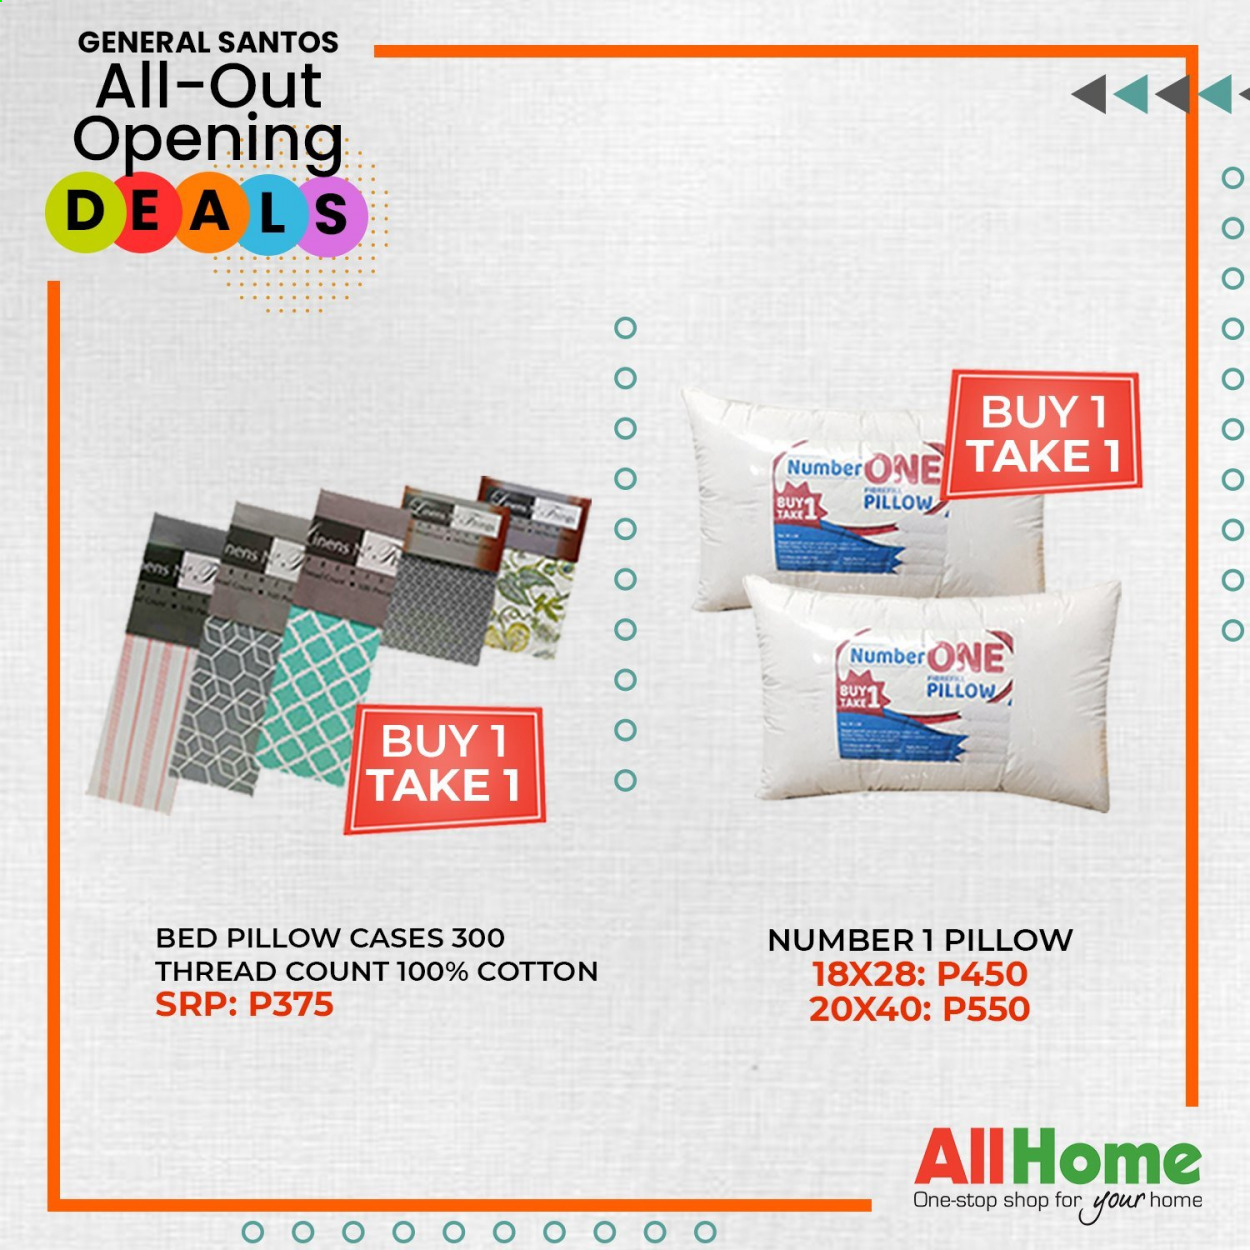 AllHome offer  - 30.1.2021 - 28.2.2021 - Sales products - pillow, bed. Page 1.